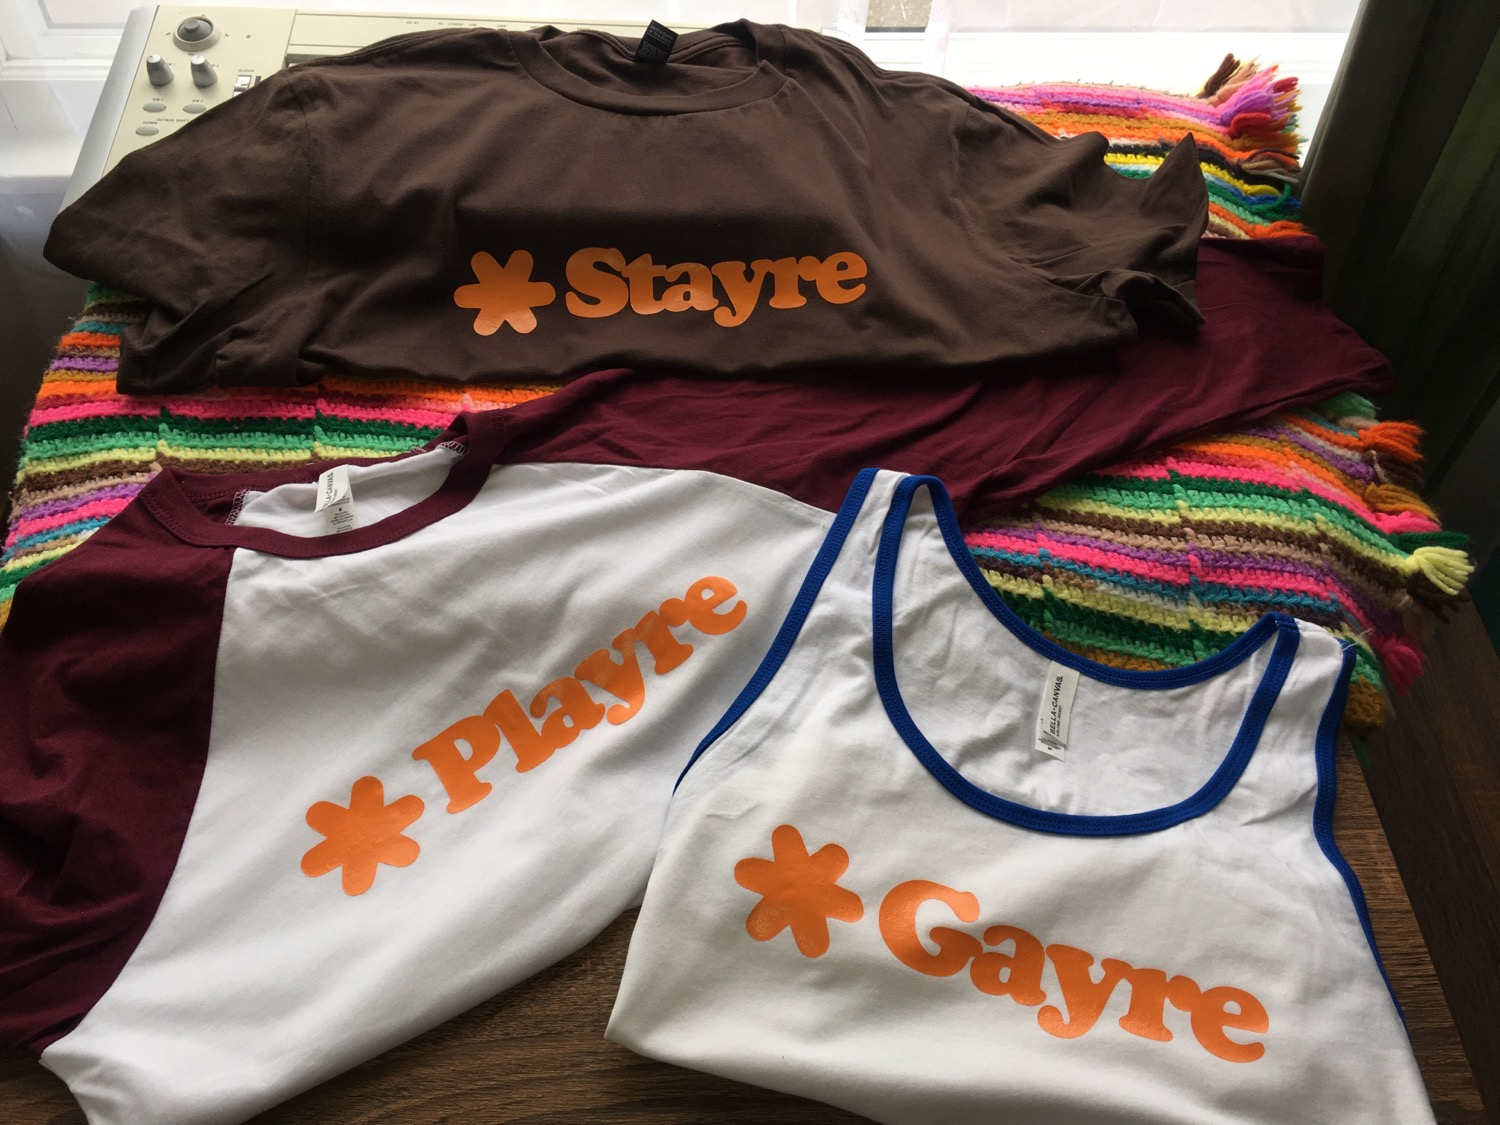 Stayre Playre Gayre T-Shirts